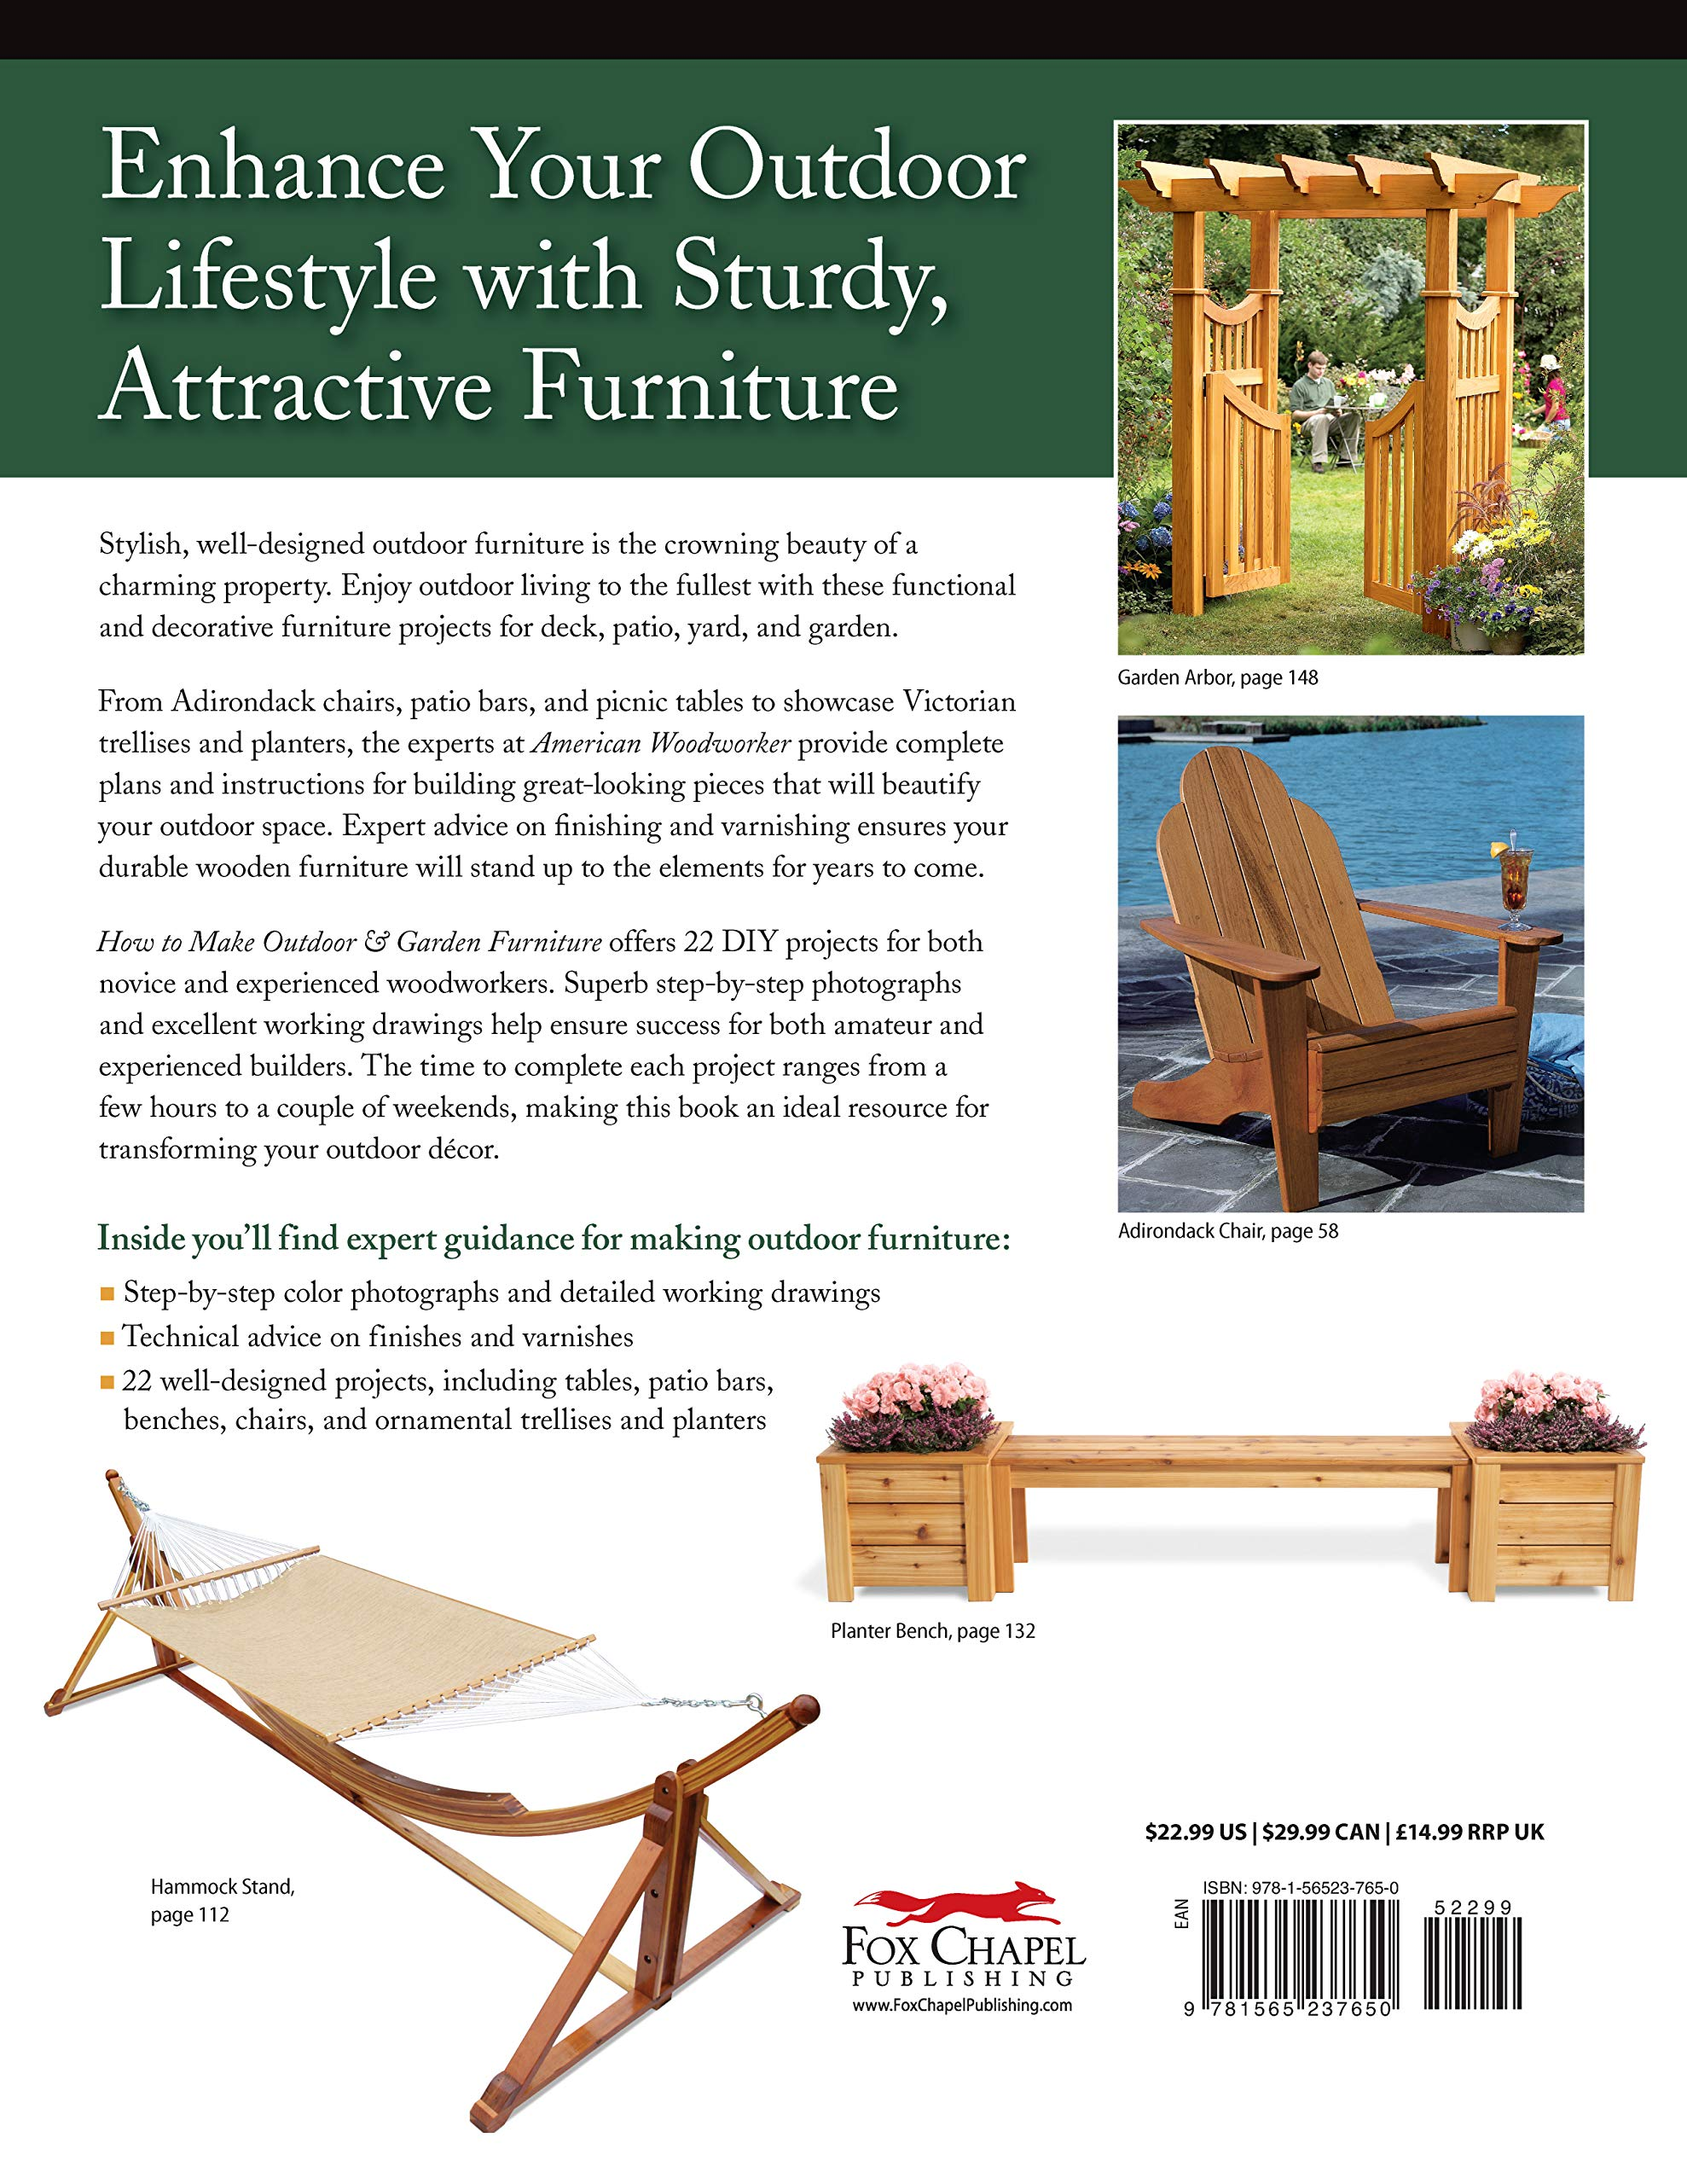 How to Make Outdoor & Garden Furniture: Instructions for Tables, Chairs, Planters, Trellises & More from the Experts at American Woodworker American Woodworker Paperback: Amazon.es: Johnson, Randy: Libros en idiomas extranjeros